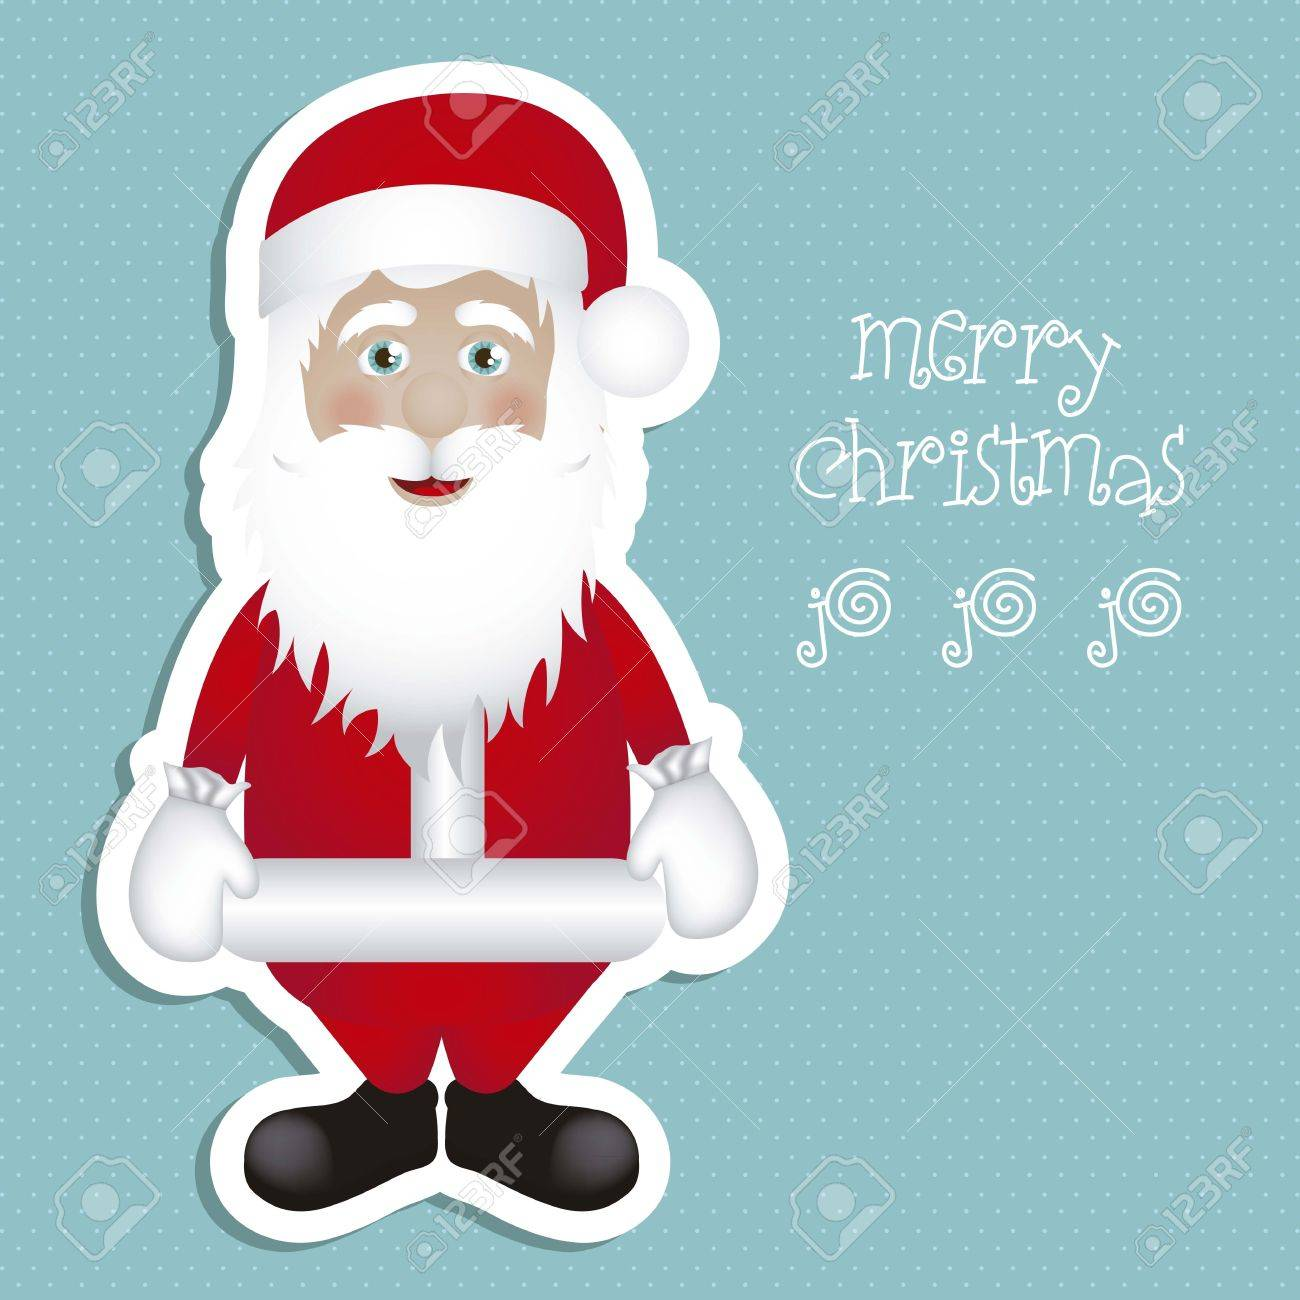 Illustration of Santa Claus isolated on blue background, vector illustration Stock Vector - 15083974